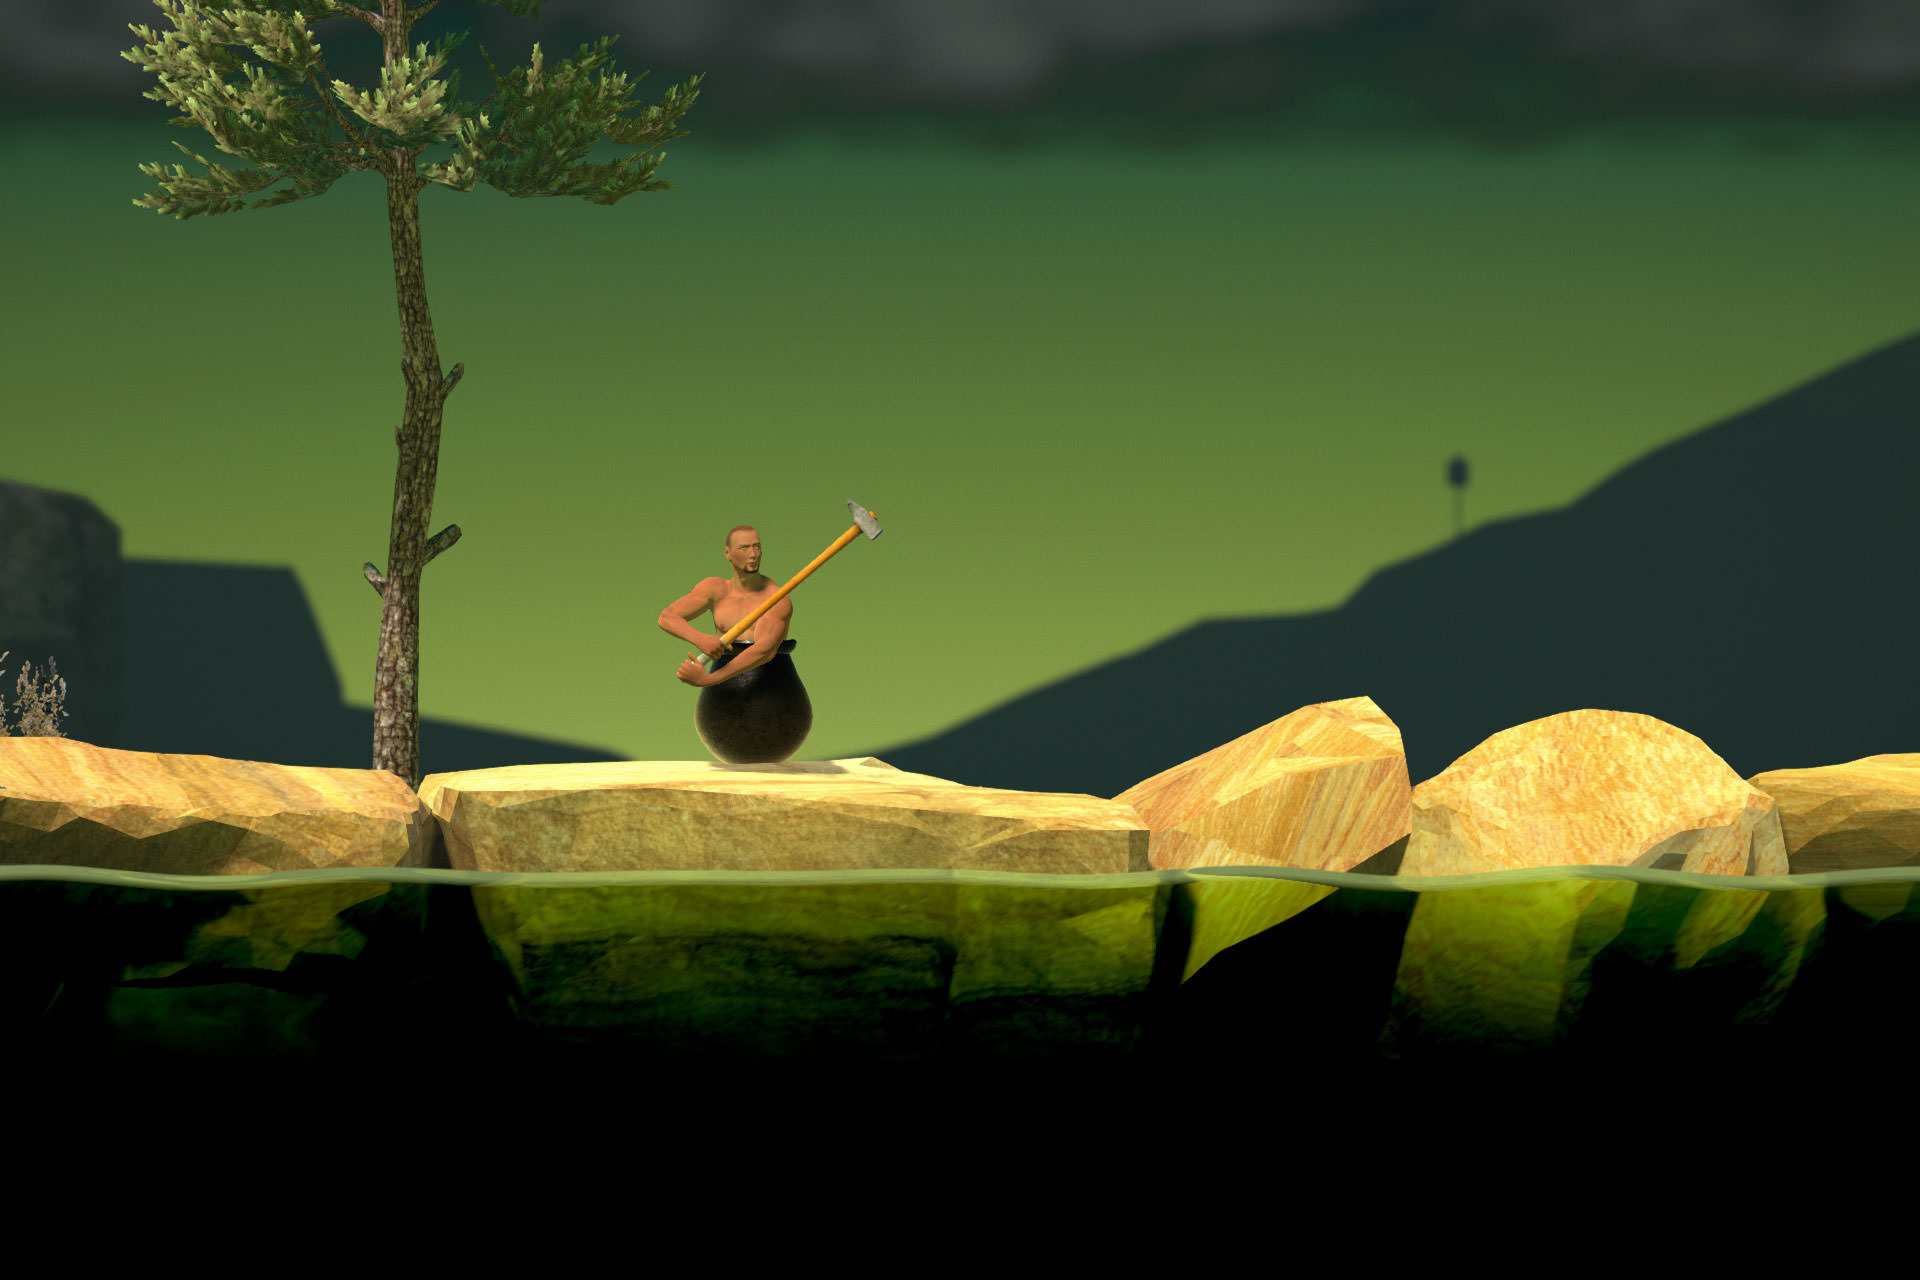 بررسی بازی موبایل Getting Over It with Bennett Foddy